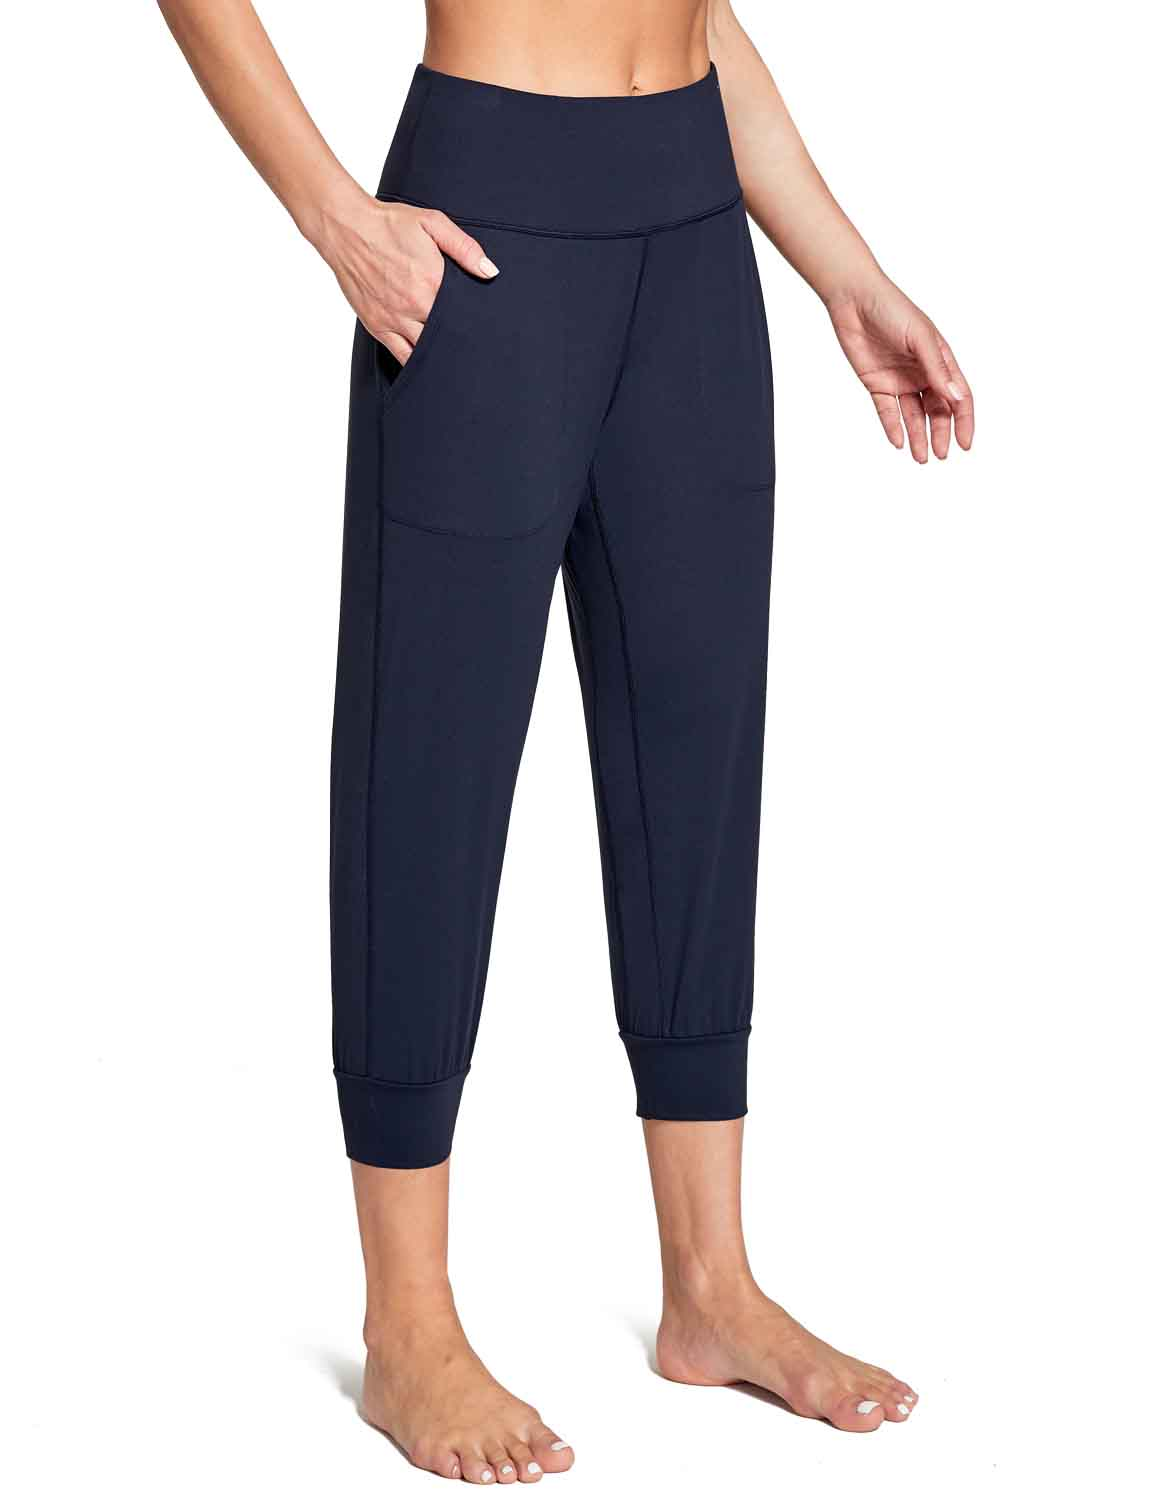 Baleaf Women's High Rise Soft Cropped Workout Pockets Joggers navy front